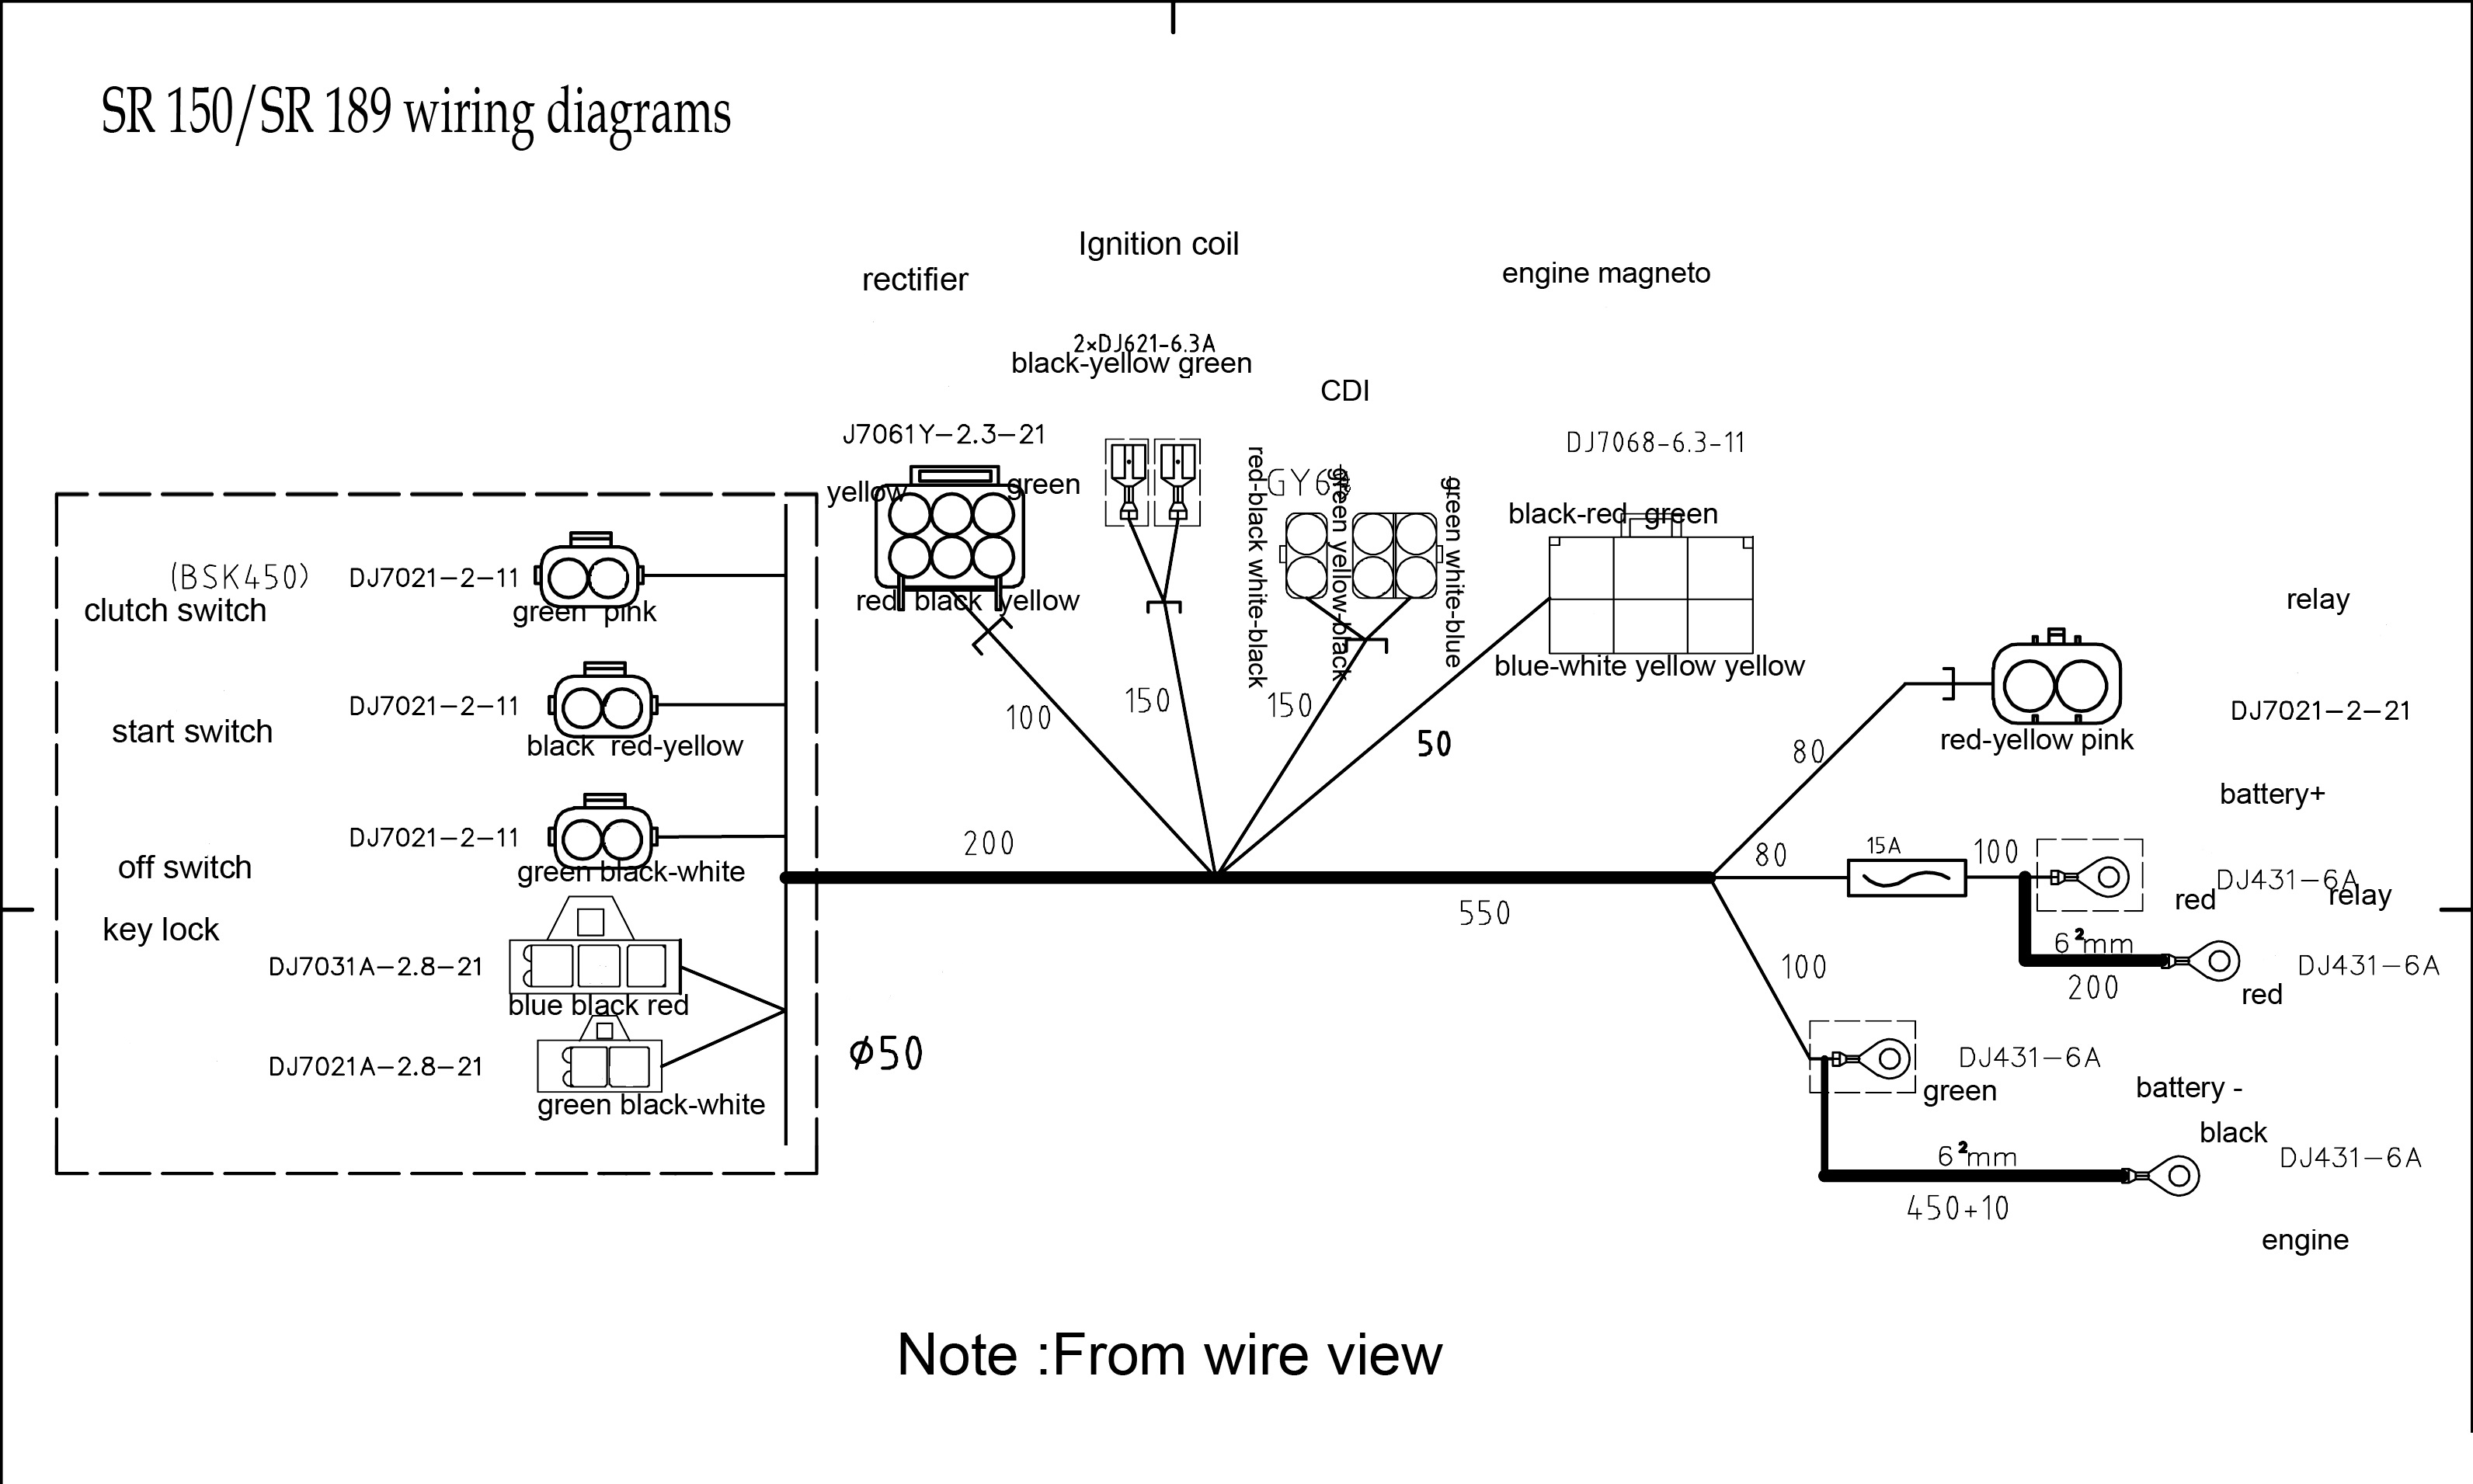 SR150_189_Wiring_Diagram wire diagram lifan 125cc engine wiring diagram at soozxer.org